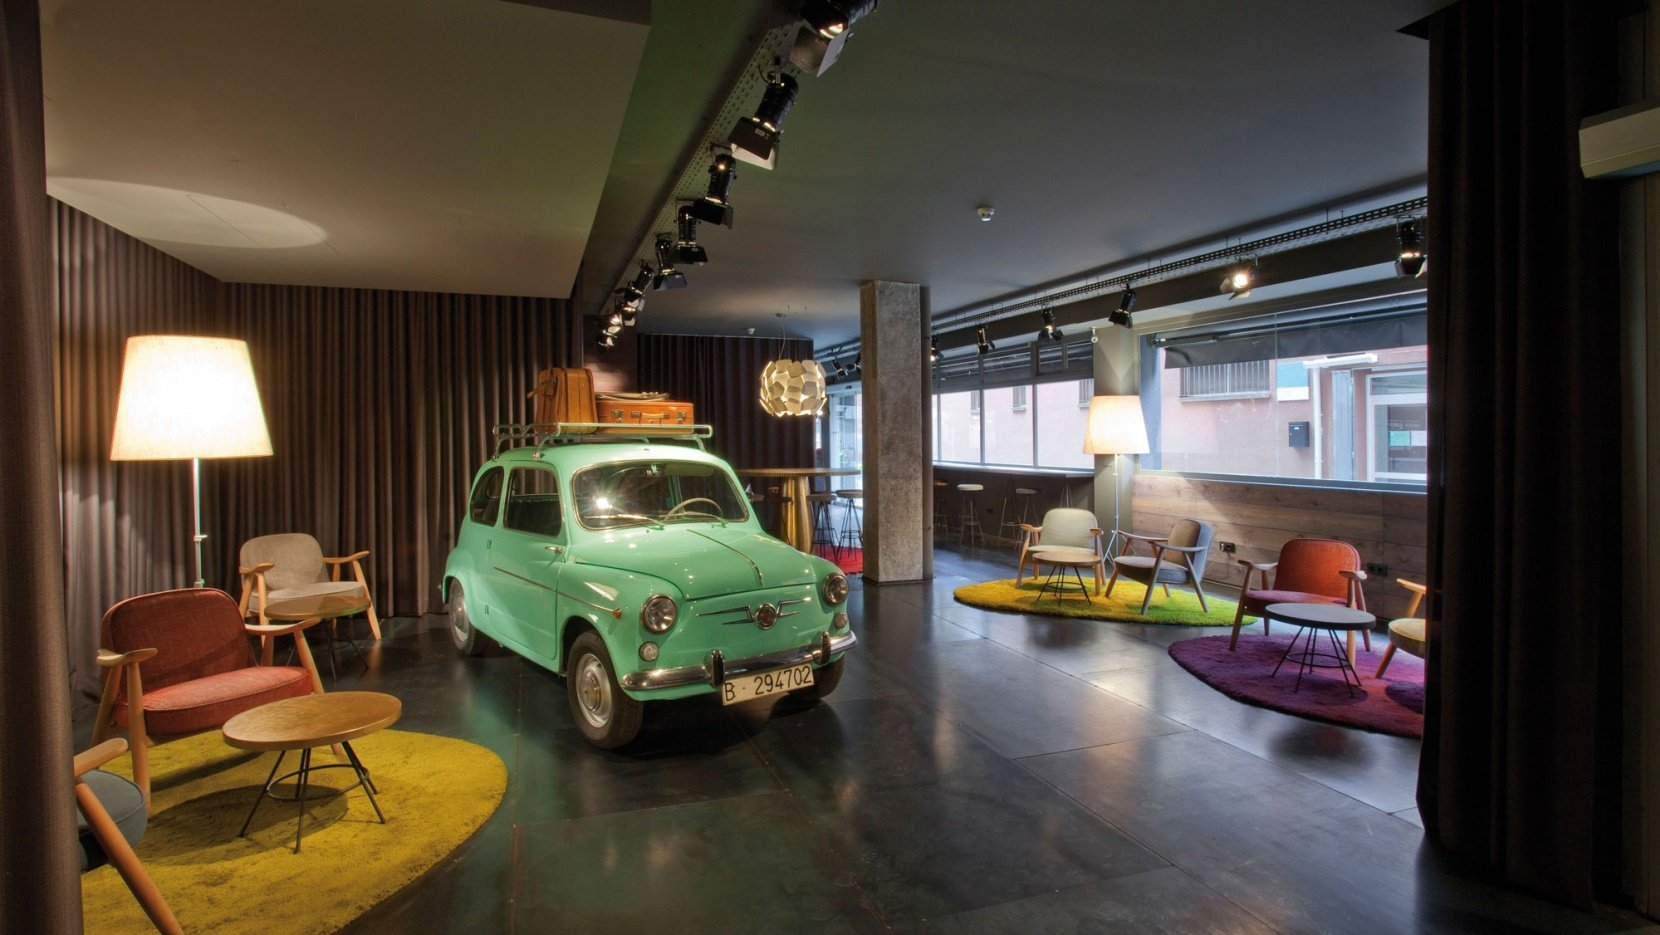 Chic Basic Ramblas Hotel By Lagranja Design In Barcelona